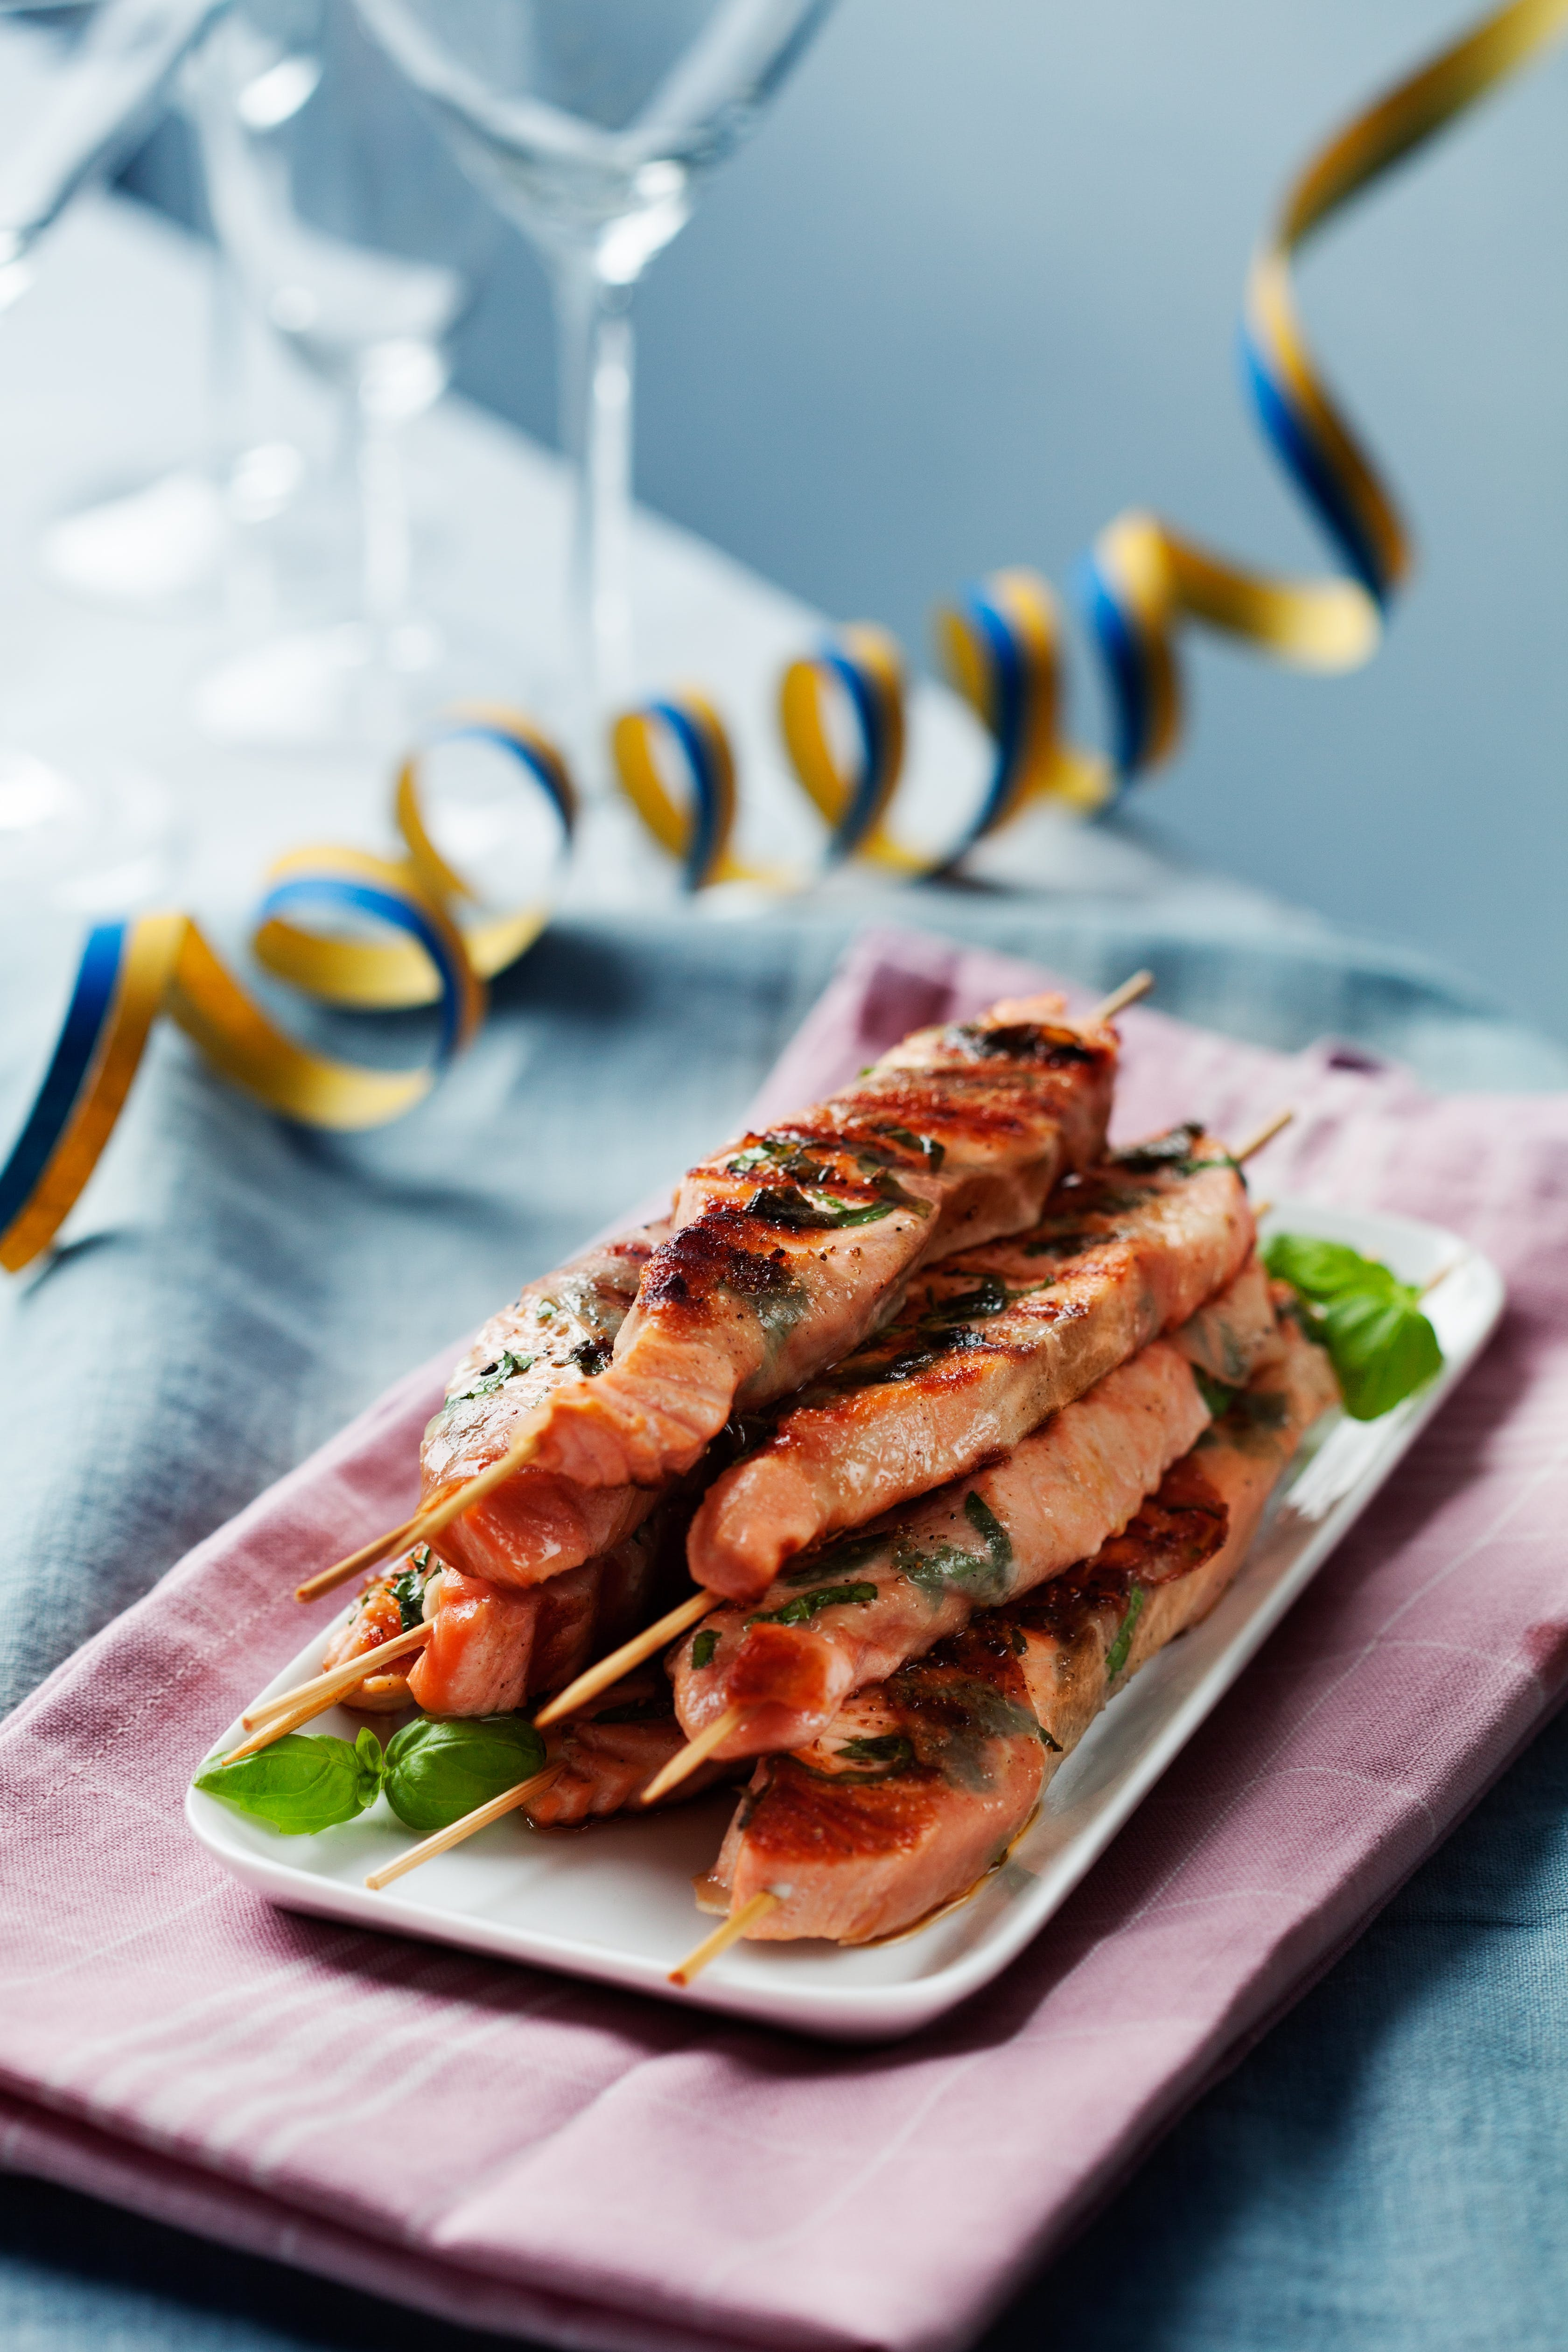 Prosciutto-wrapped salmon skewers